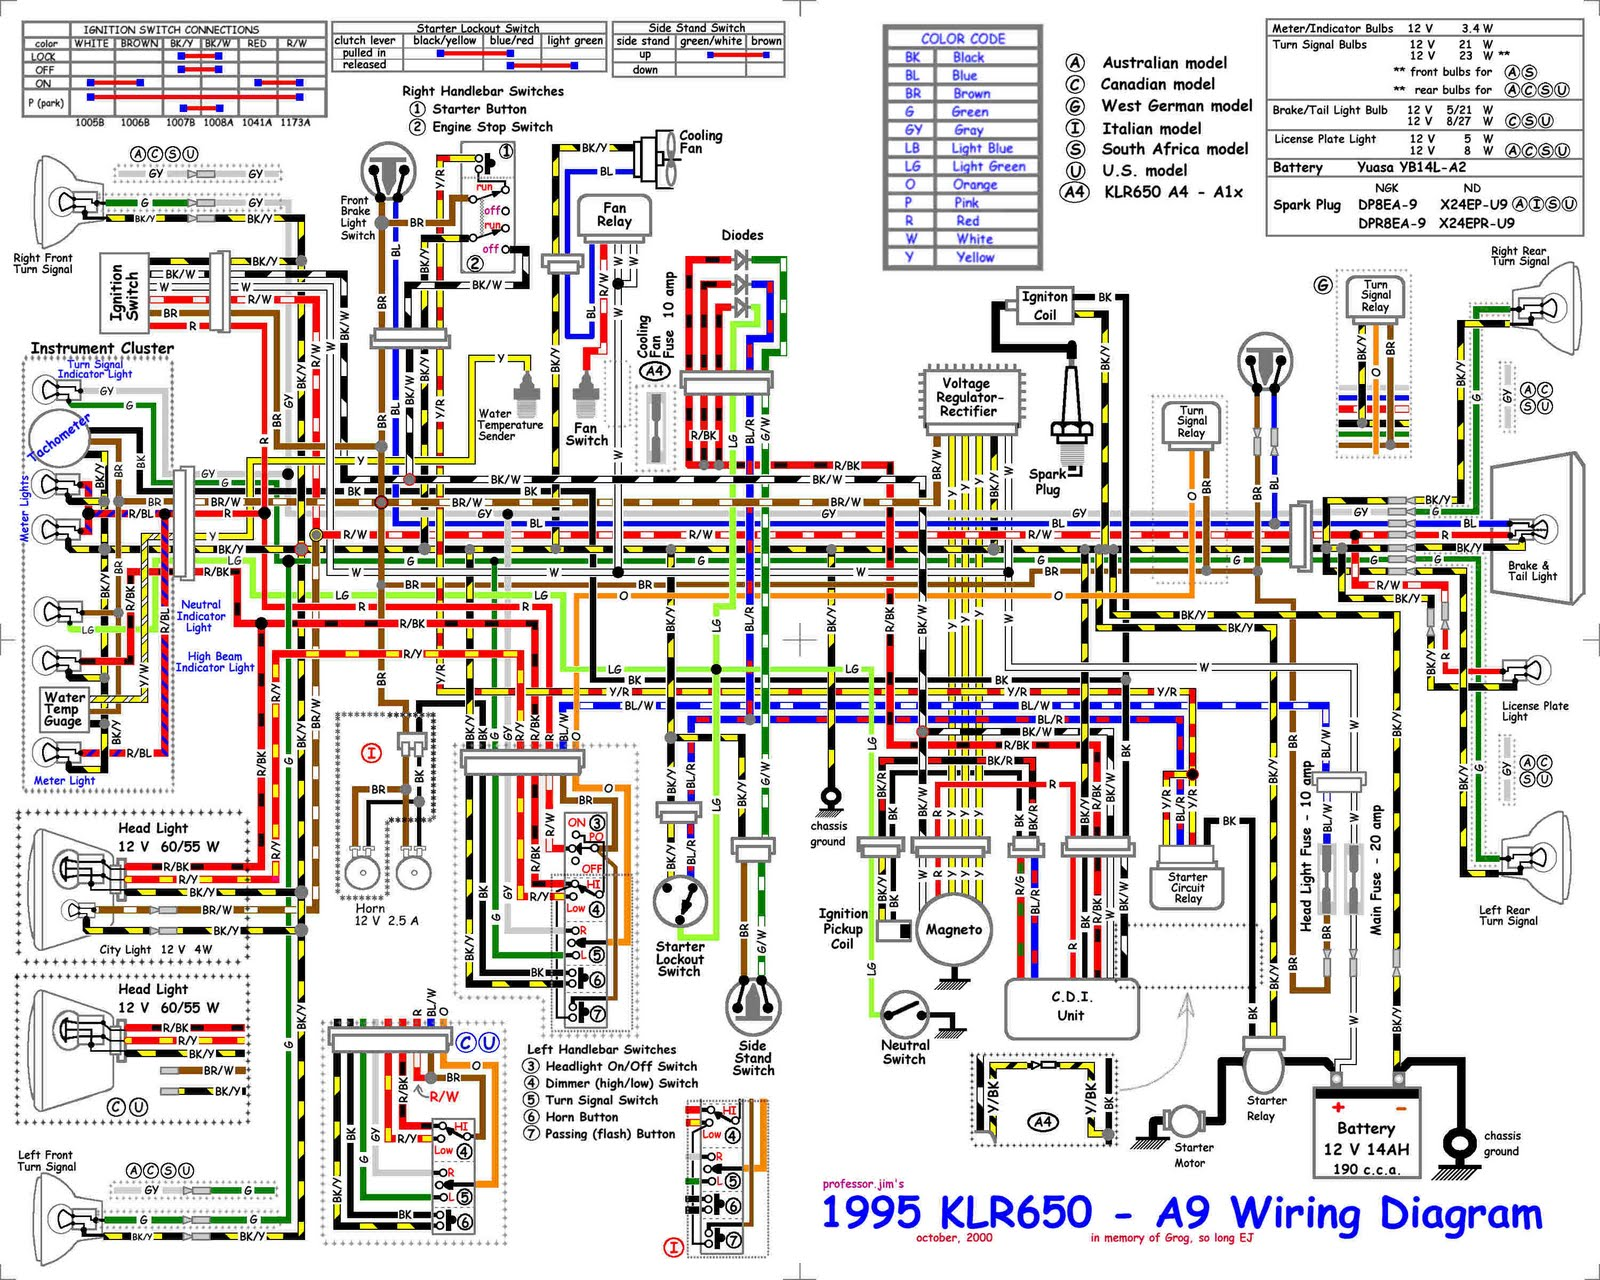 peugeot 106 wiring diagram electrical system circuit with 1974 Chevrolet Monte Carlo Wiring on Engine further Cars Part besides Peugeot Wiring Diagrams also Volkswagen Gti 4 Door together with Peugeot 206 Bsi Wiring Diagram.